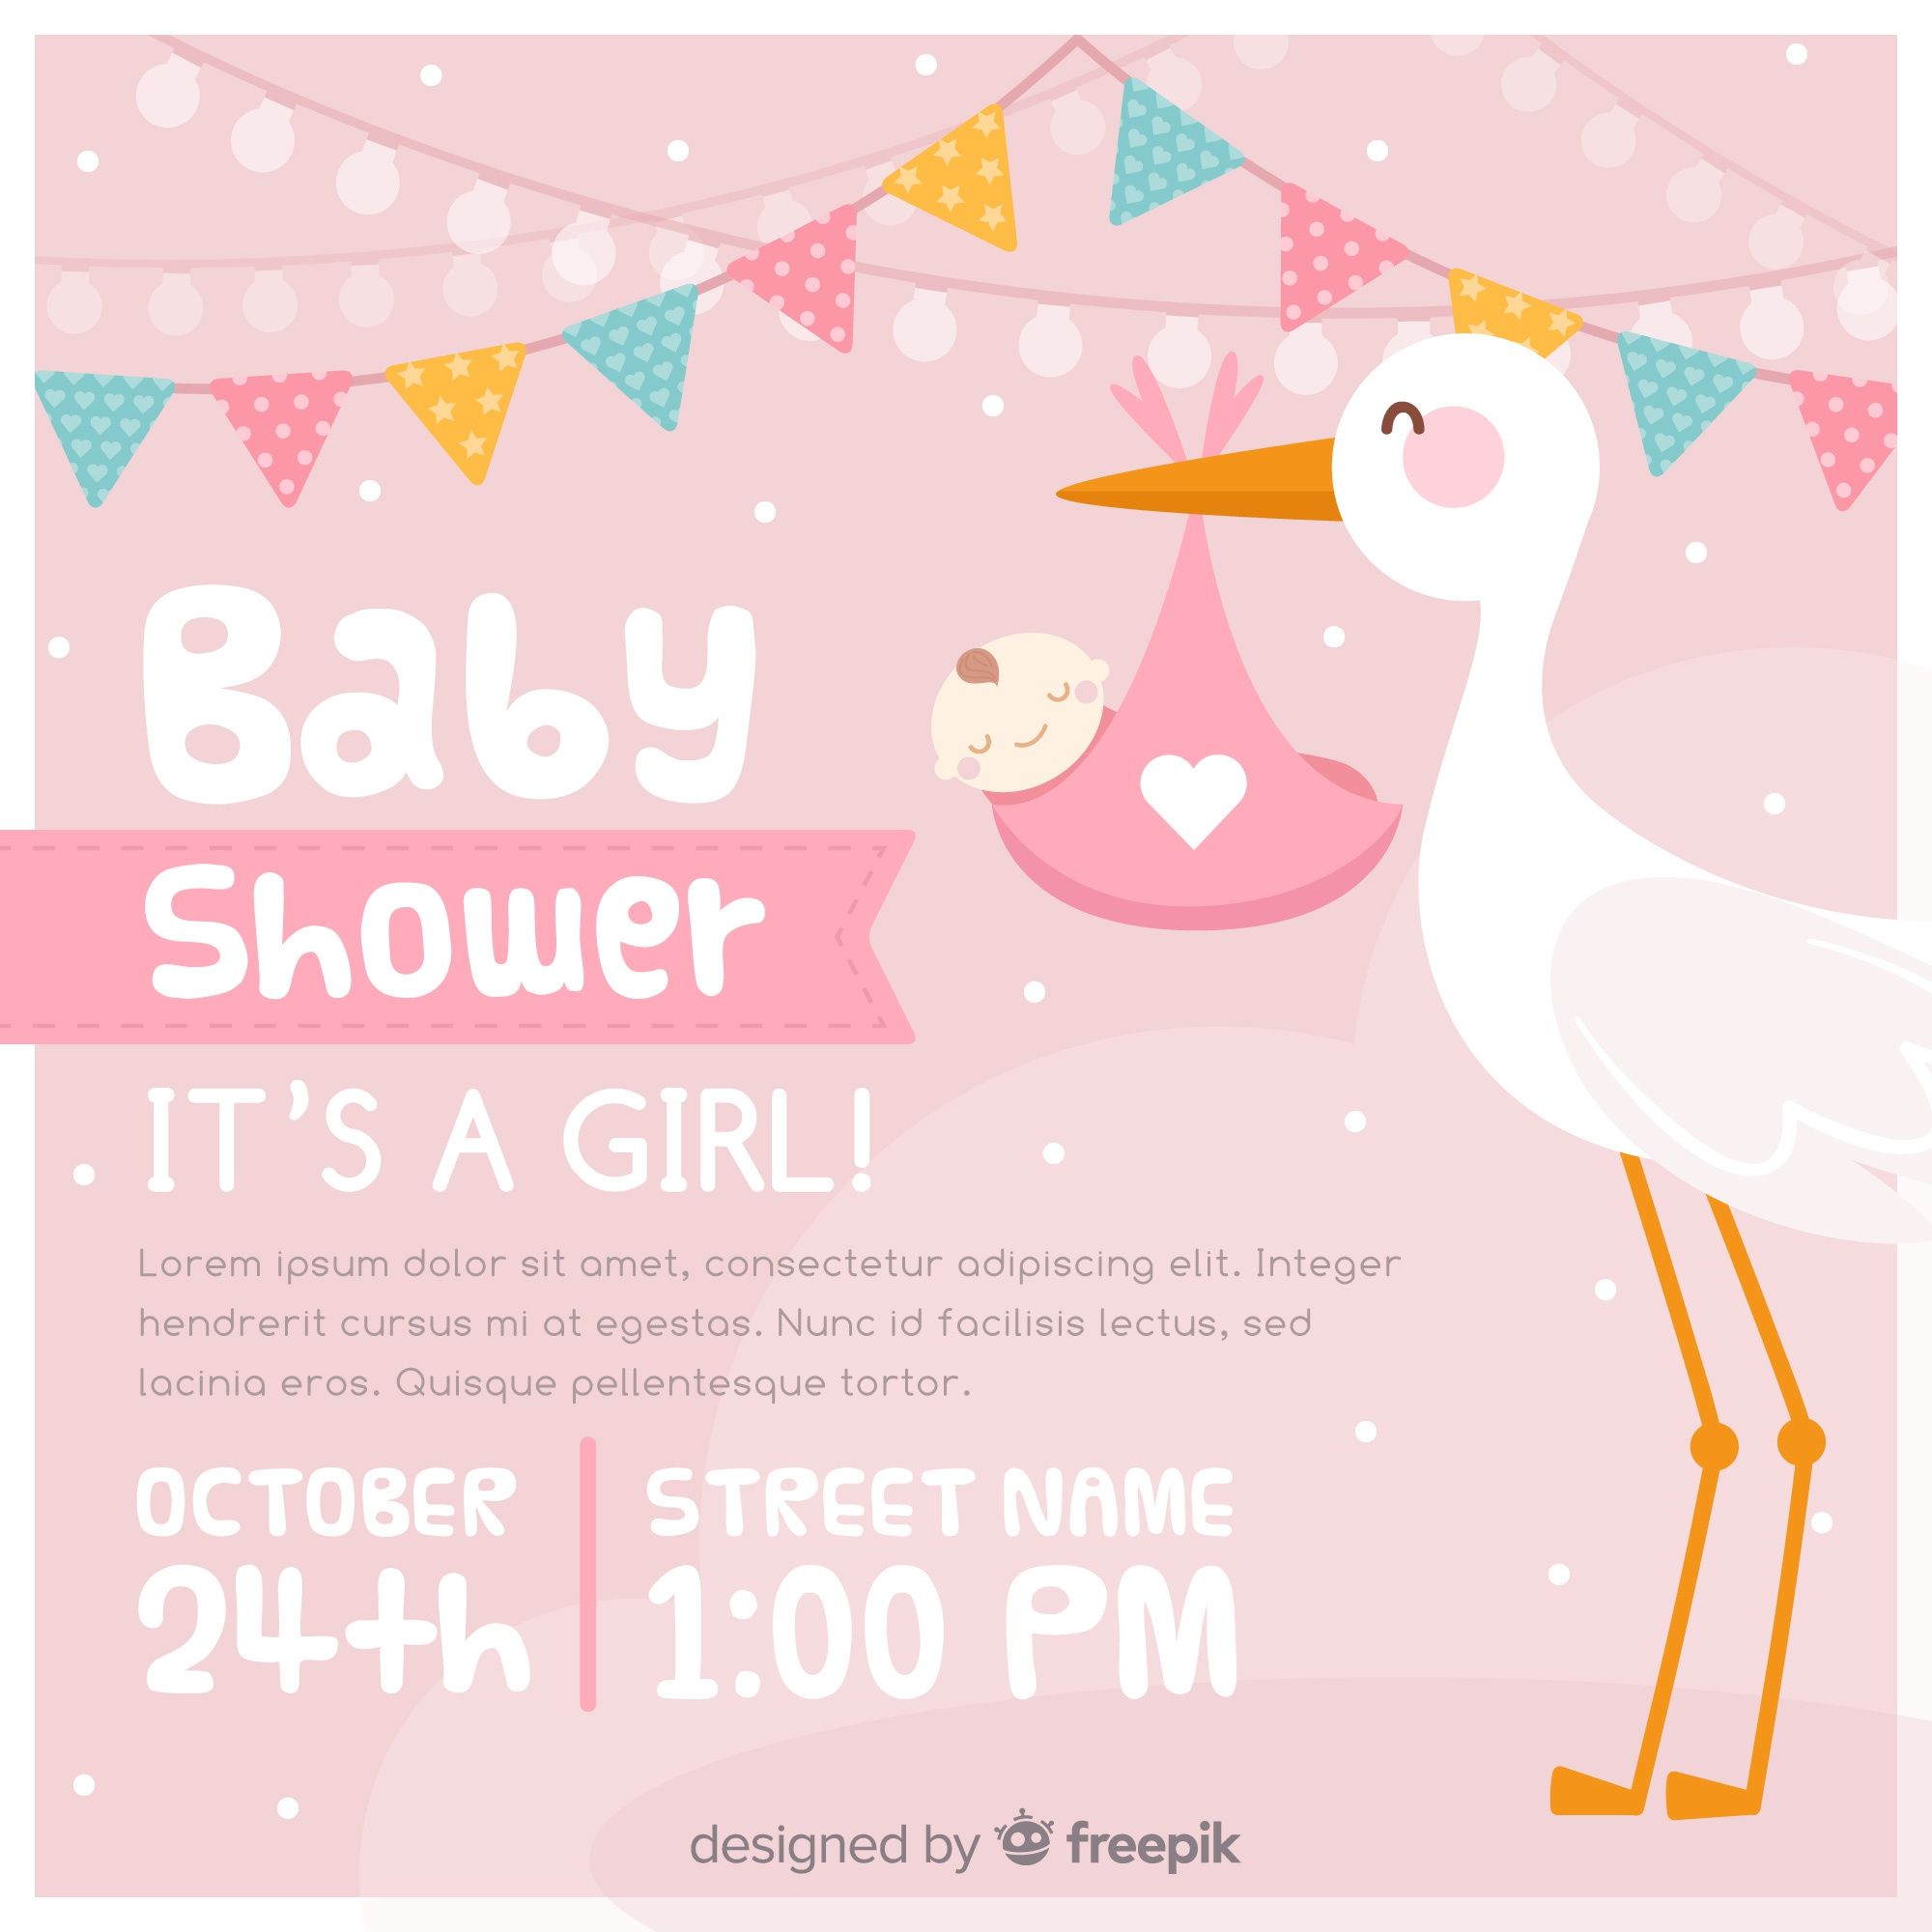 Baby shower uitnodiging